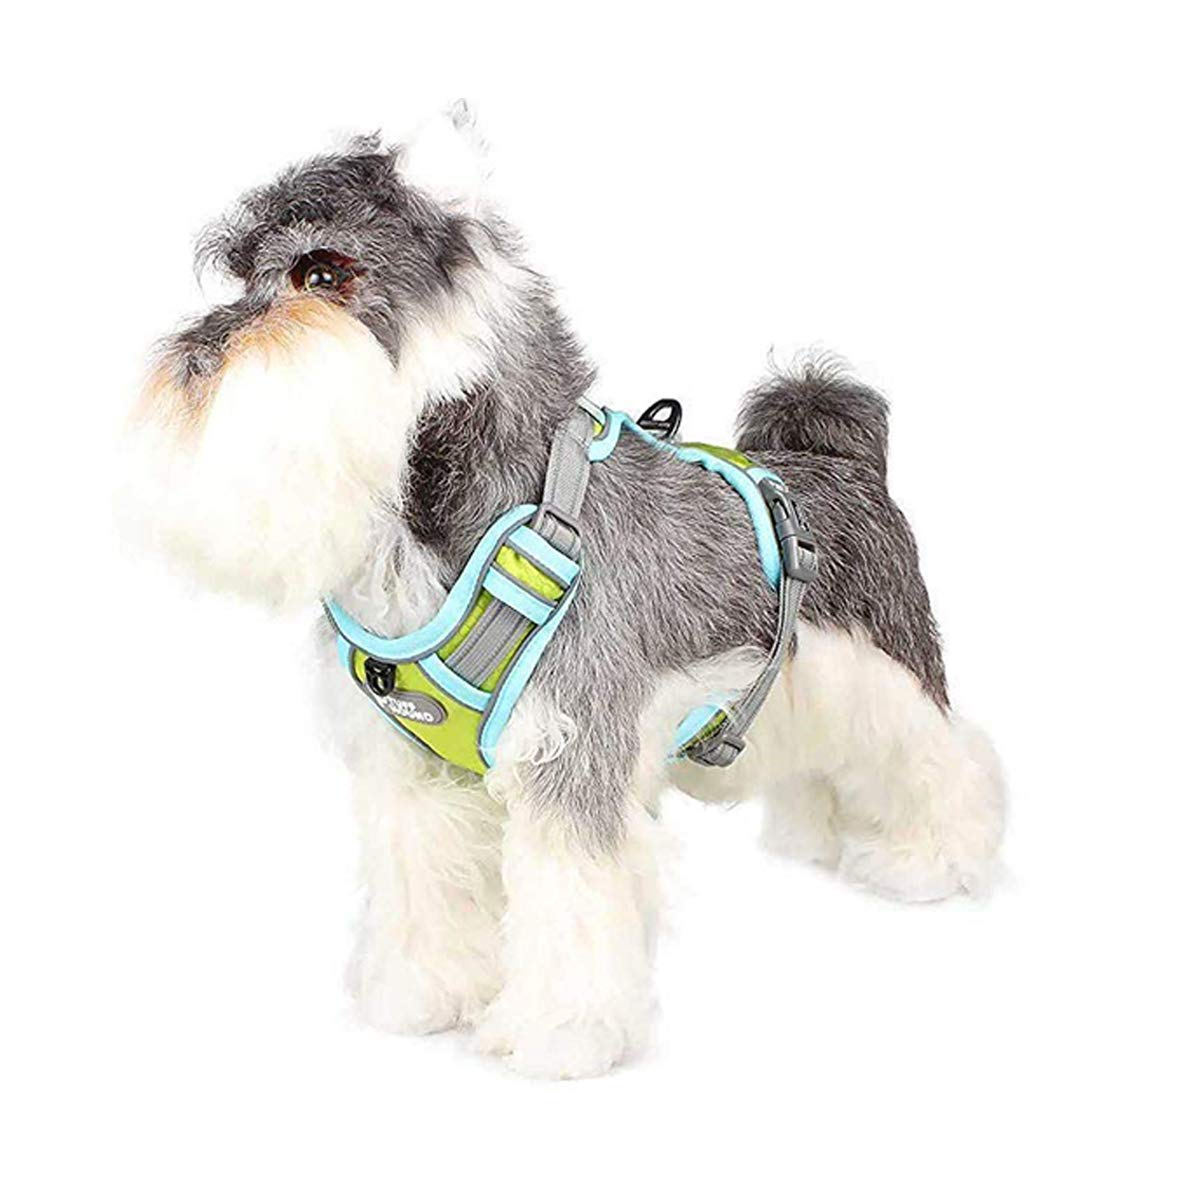 bluee Small bluee Small PETCUTE Dog Harness Soft Padded Dog Vest Harness Adjustable with Reflective Strip Padded Vest for Dog Training or Walking bluee S